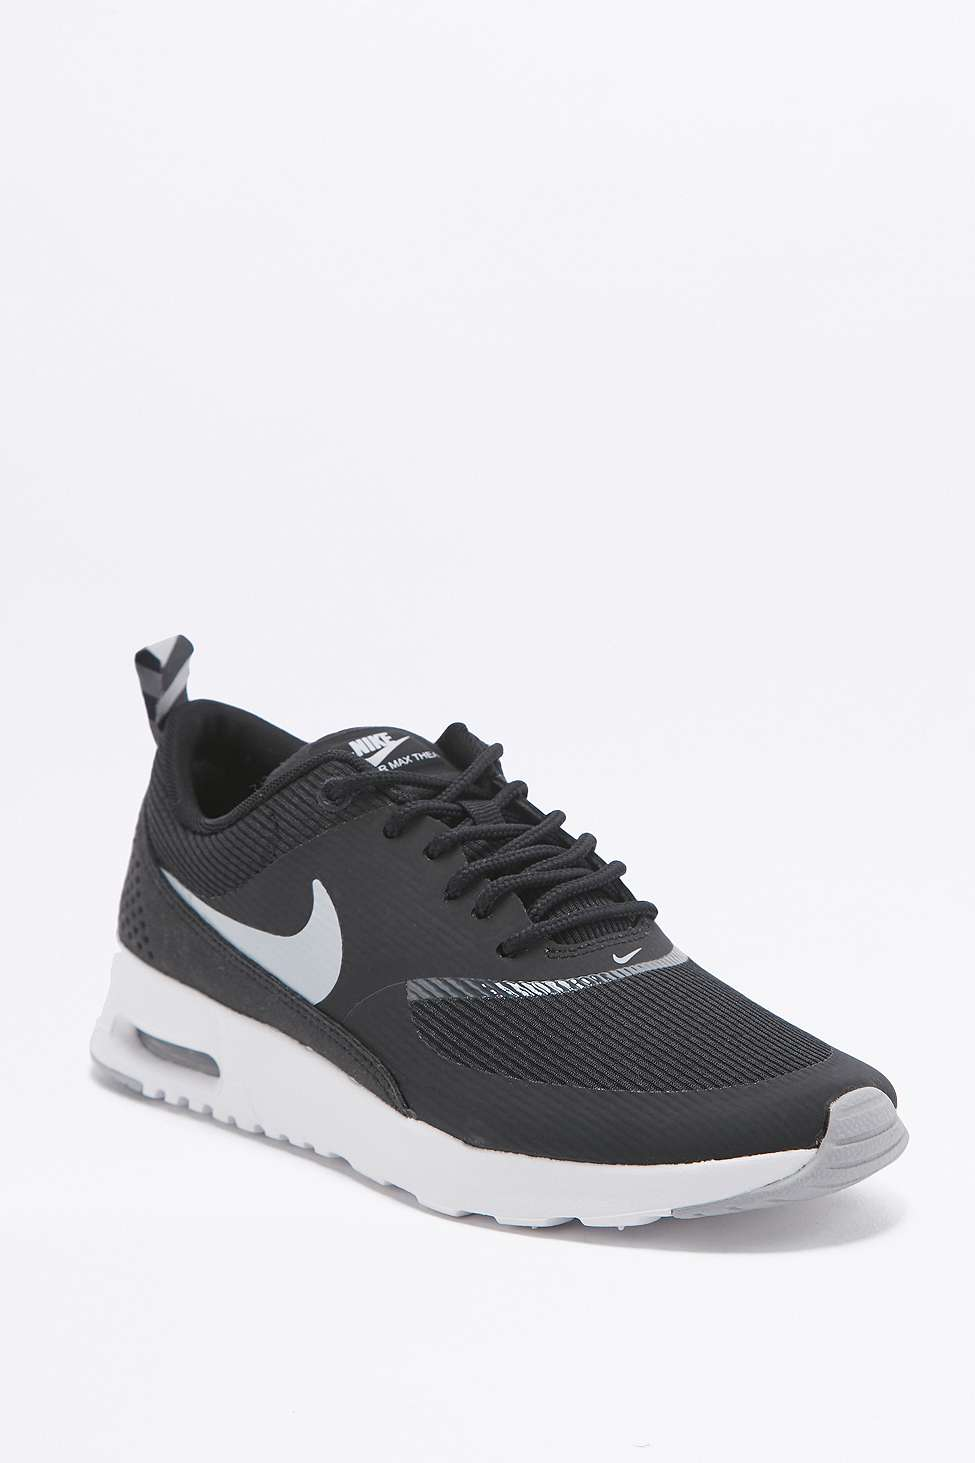 Nike Air Max Thea Black and White Trainers